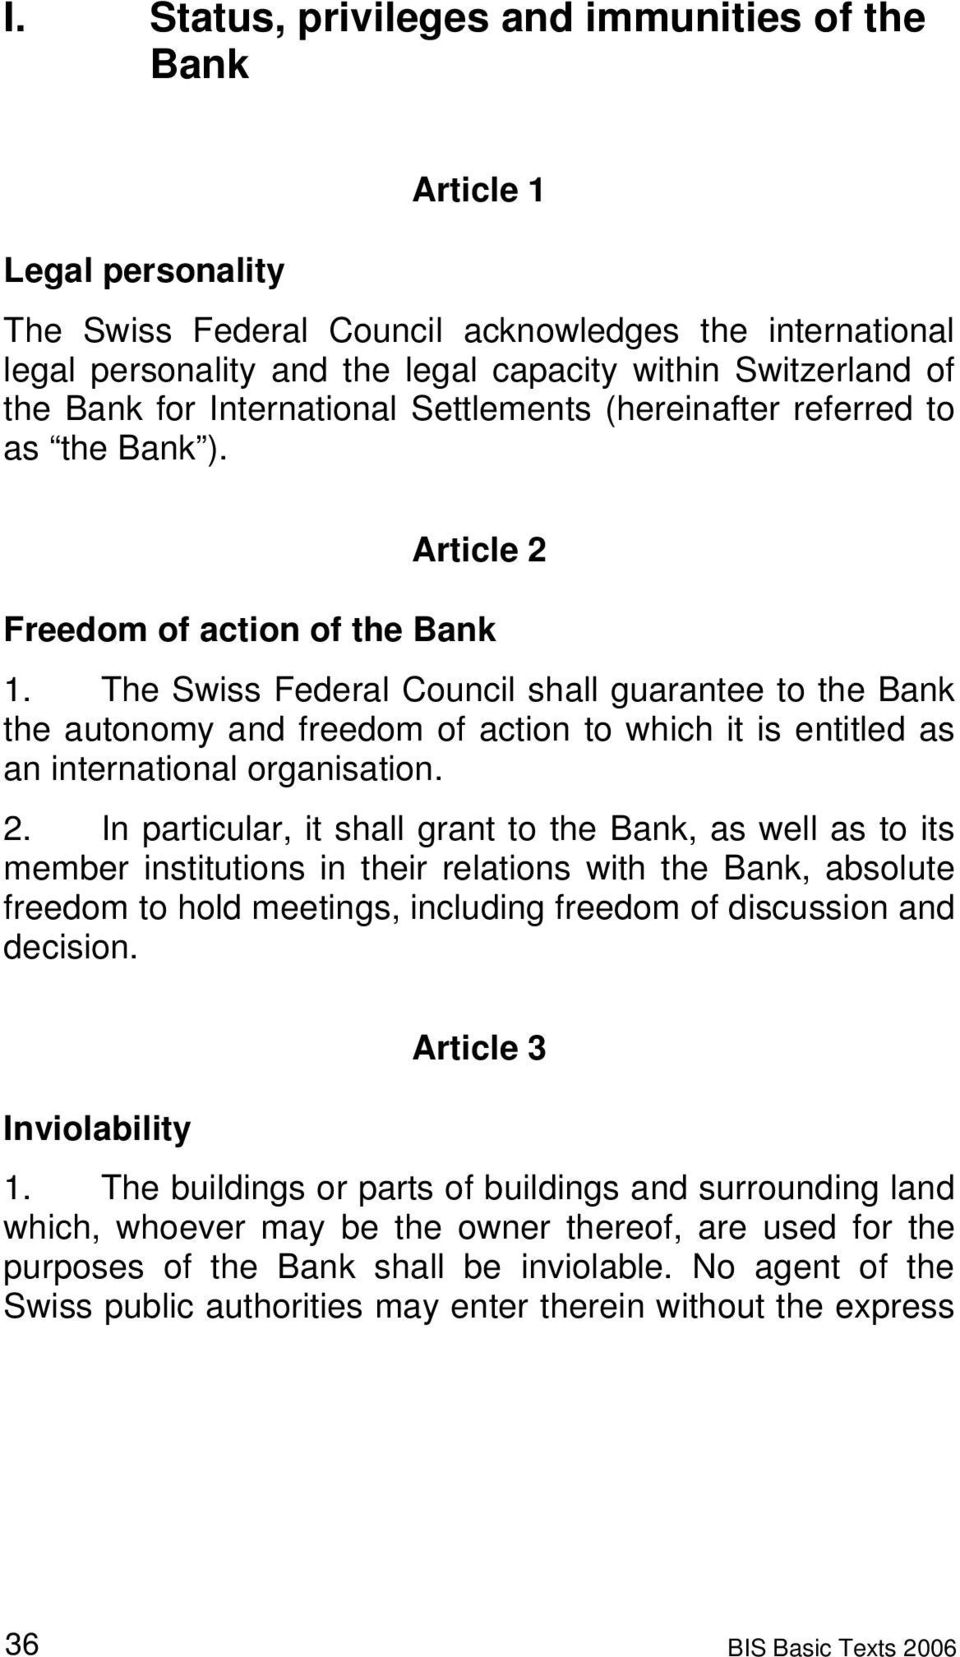 The Swiss Federal Council shall guarantee to the Bank the autonomy and freedom of action to which it is entitled as an international organisation. 2.